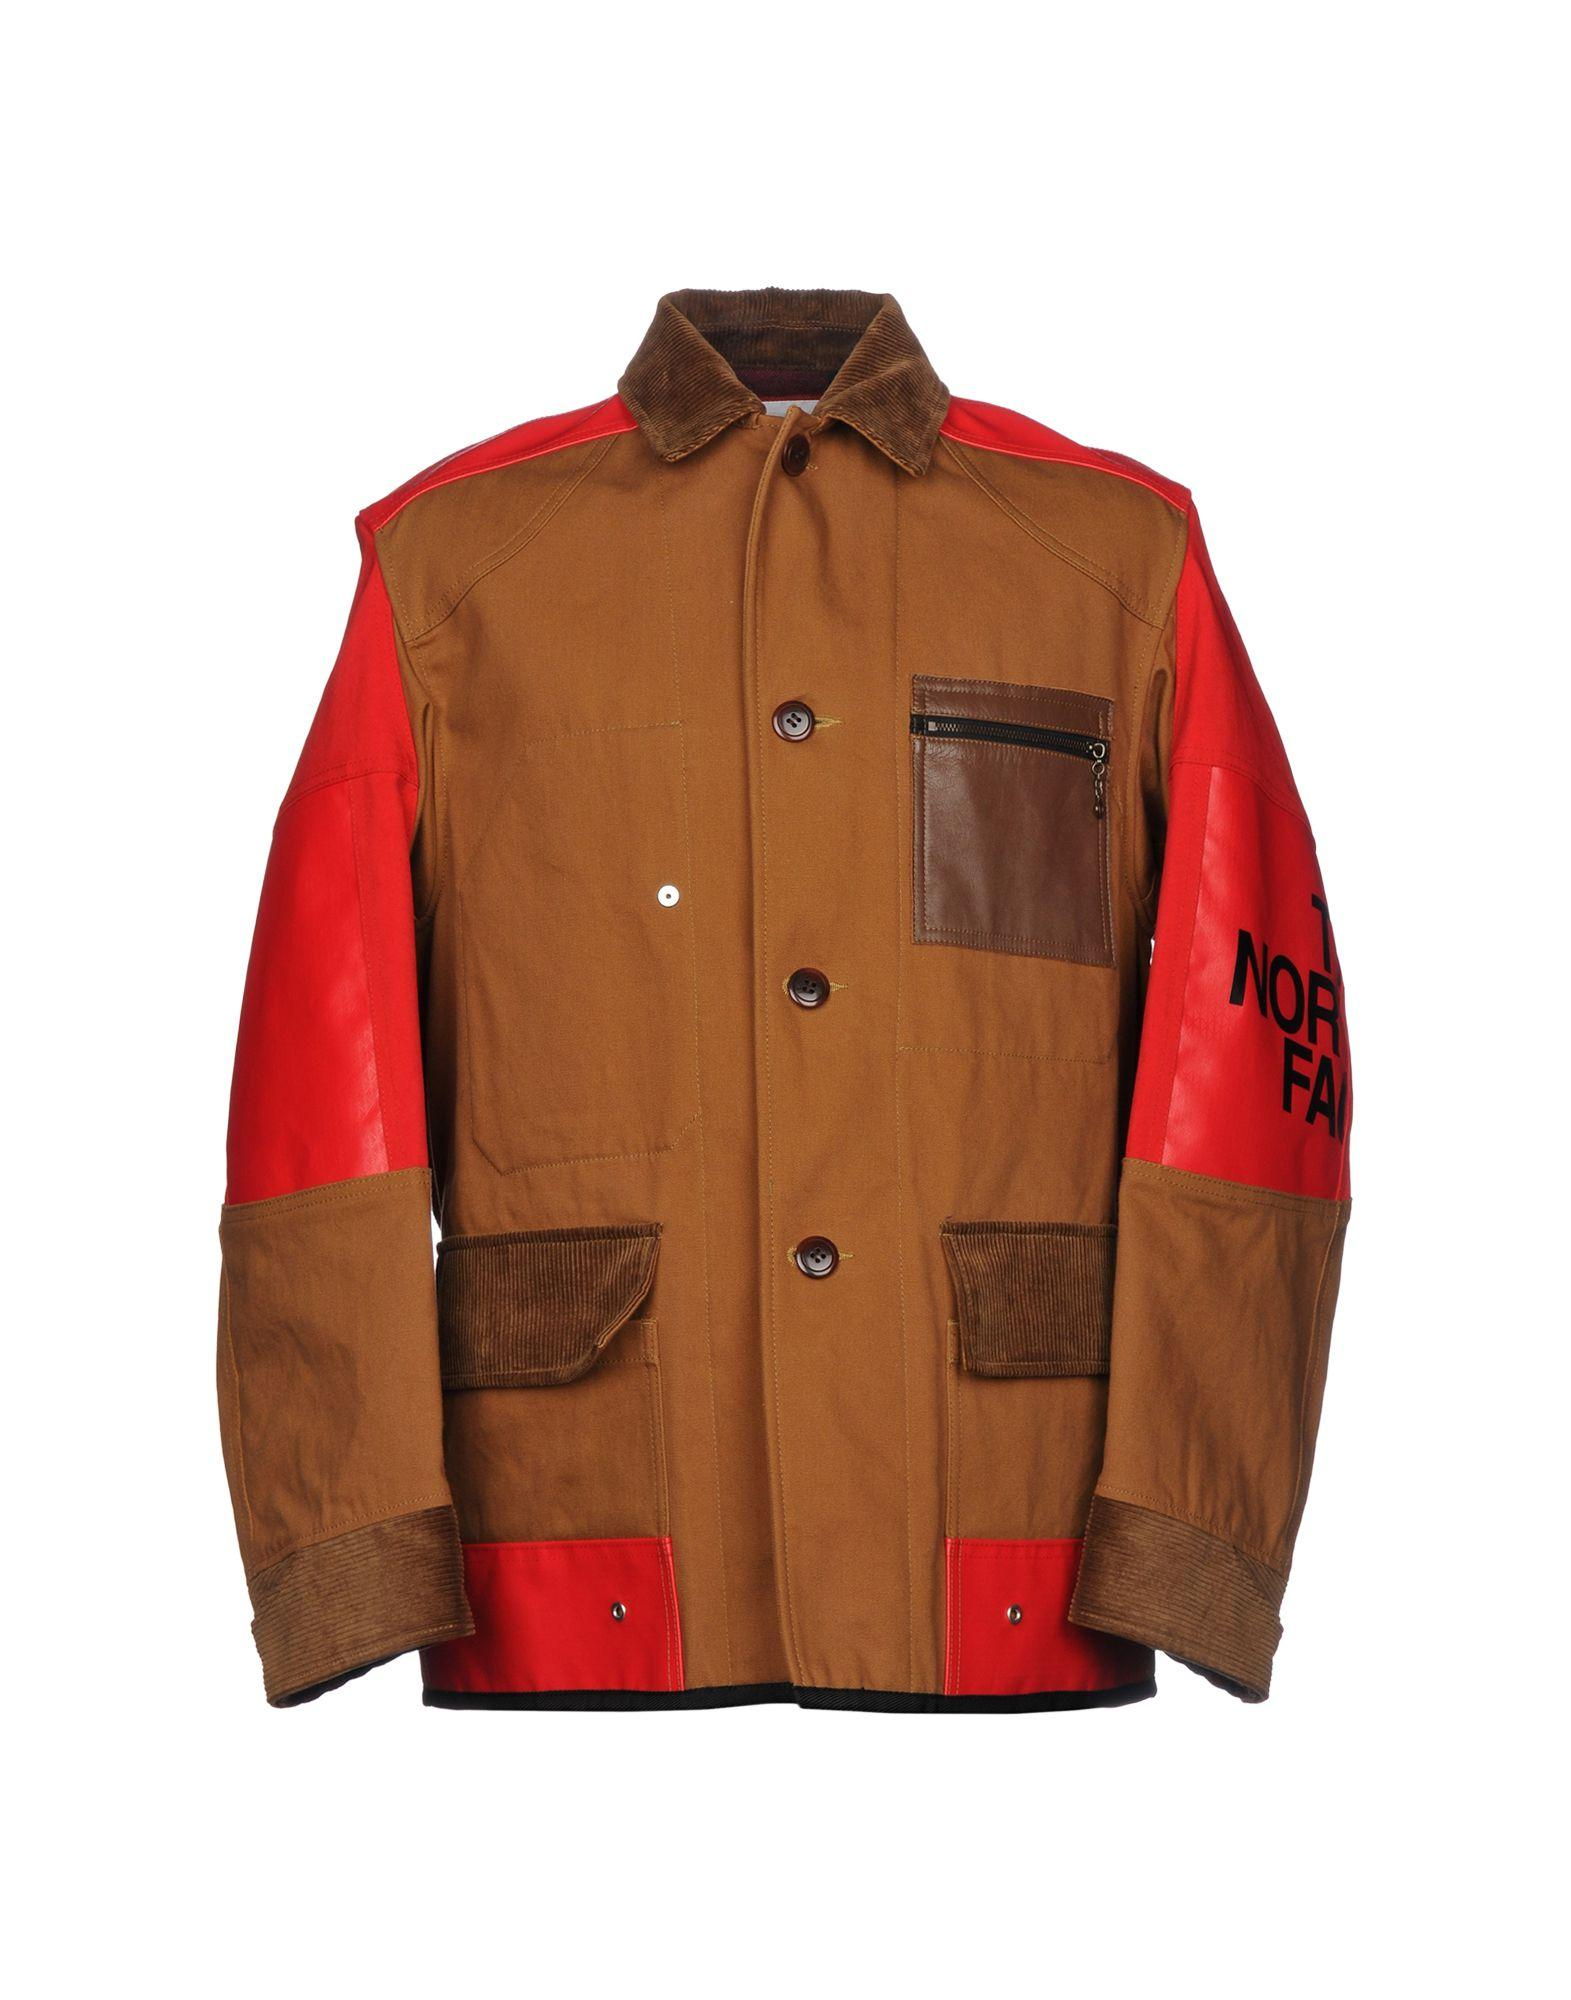 The North Face Jacket In Camel